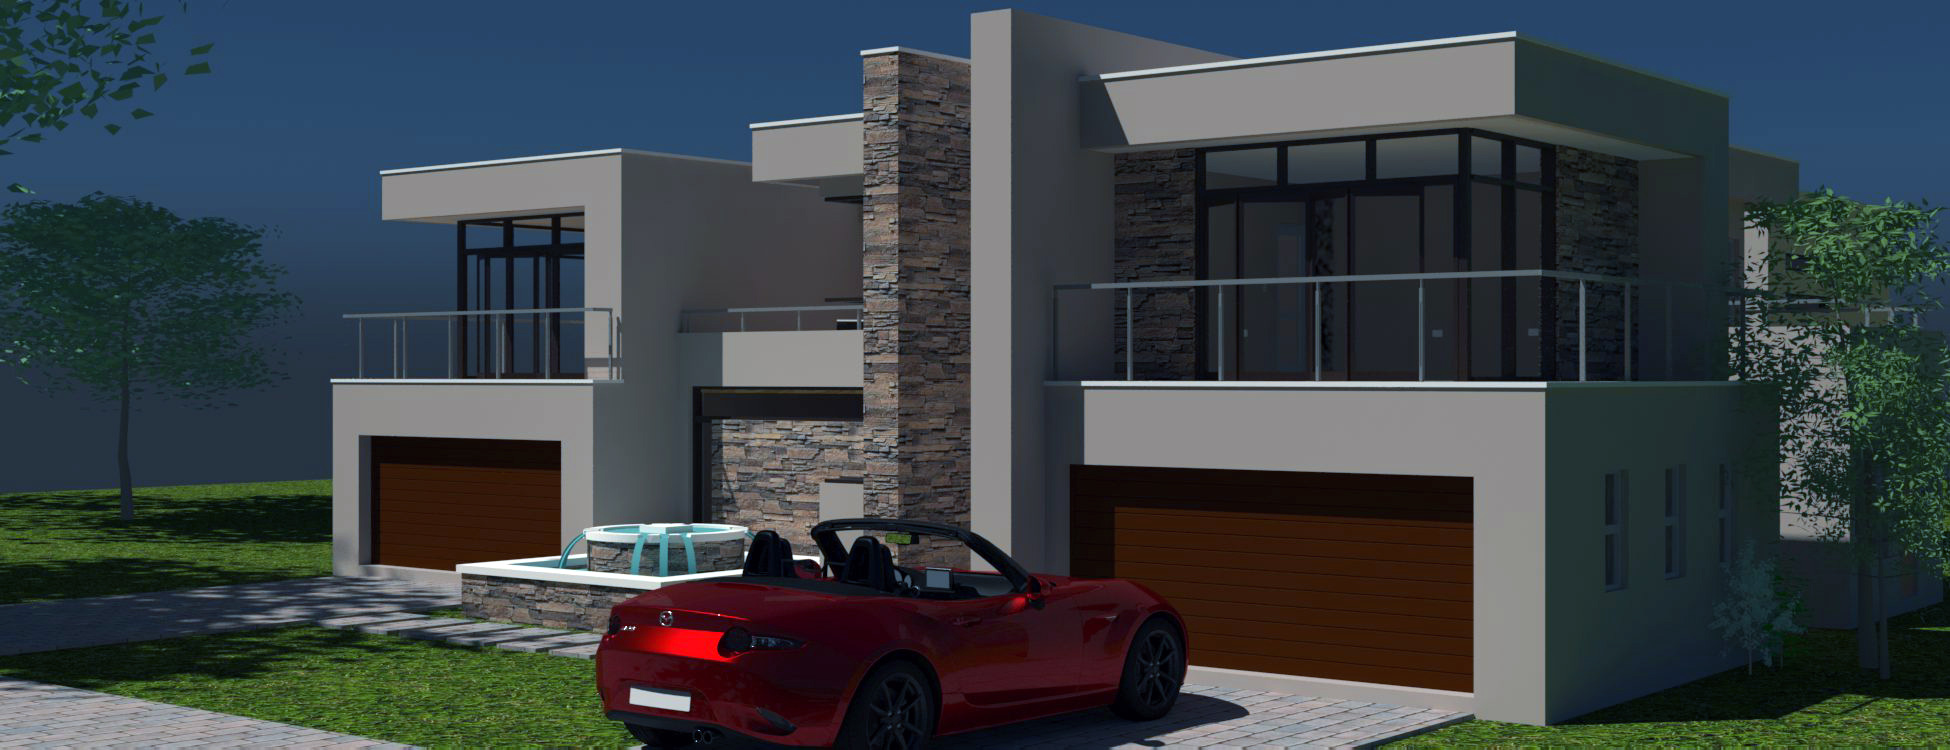 house plans south africa house plans collection of house plans in south africa Double volume open plan house layout Stunning home design building plans architectural designs small house plans with photos design your own house architecture design floorplanner double story house floor plans double storey with 4 garages is offered by Nethouseplans South Africa collection of house plans double story 3 bedroom house plans double storey 4 Bedroom house plans modern house plans